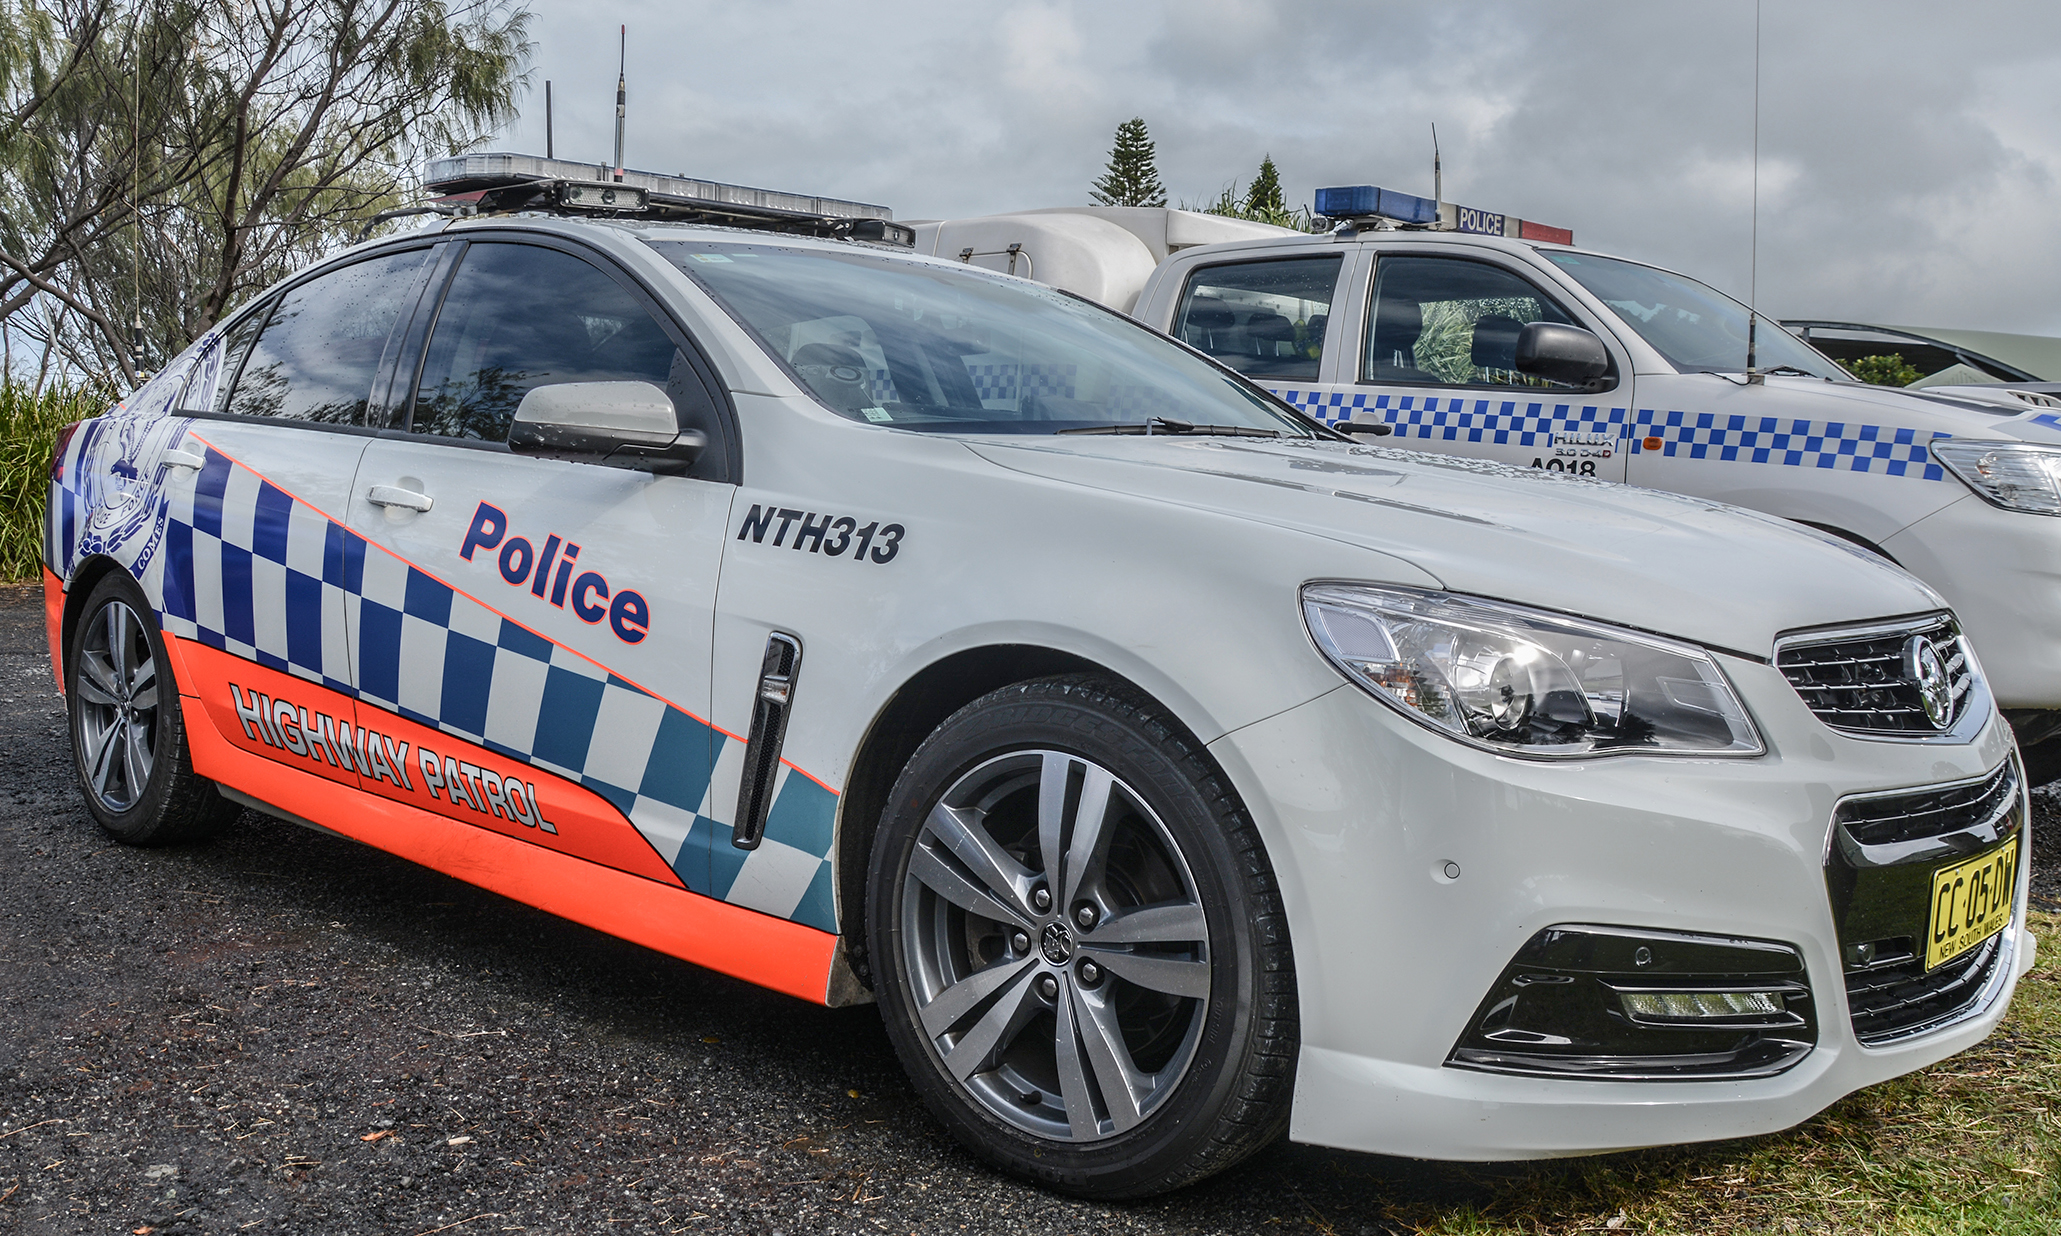 File2015 Holden Commodore VF SS sedan NSW Police Force 2015